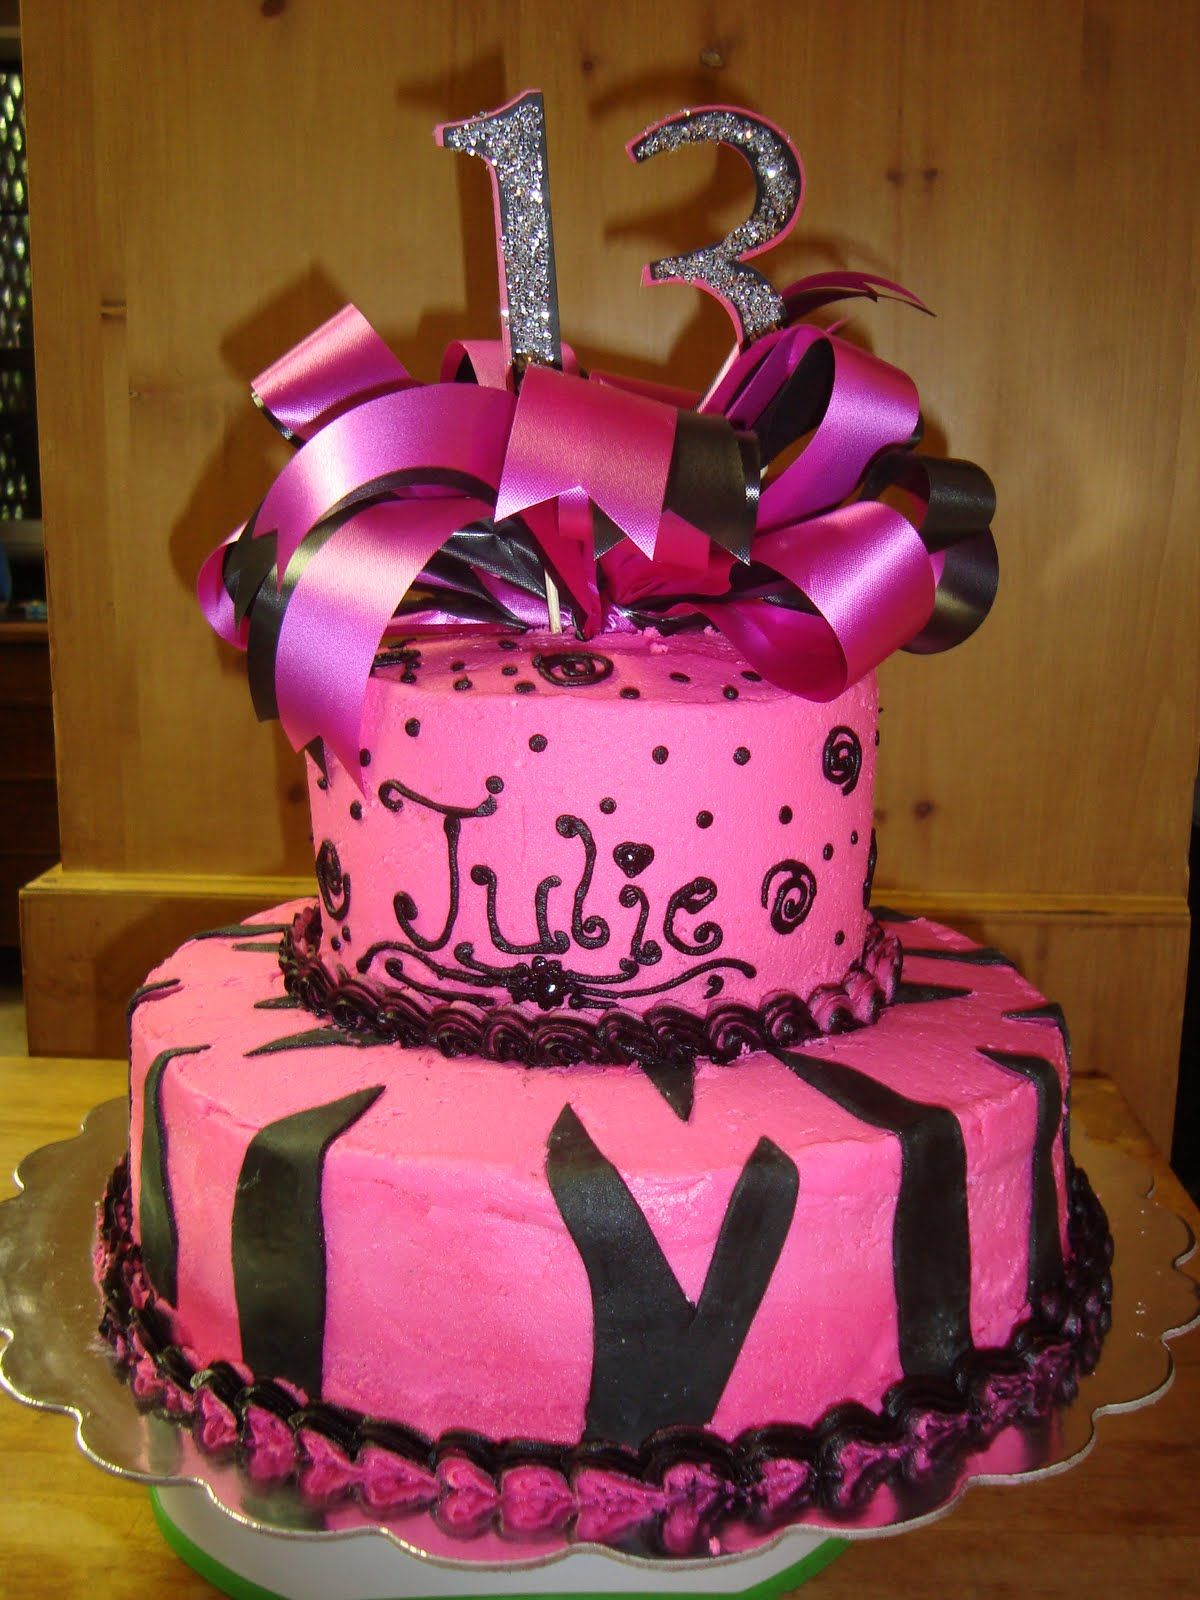 Sweet 13 Birthday Party Ideas One Of The Girls Friends Turned 13